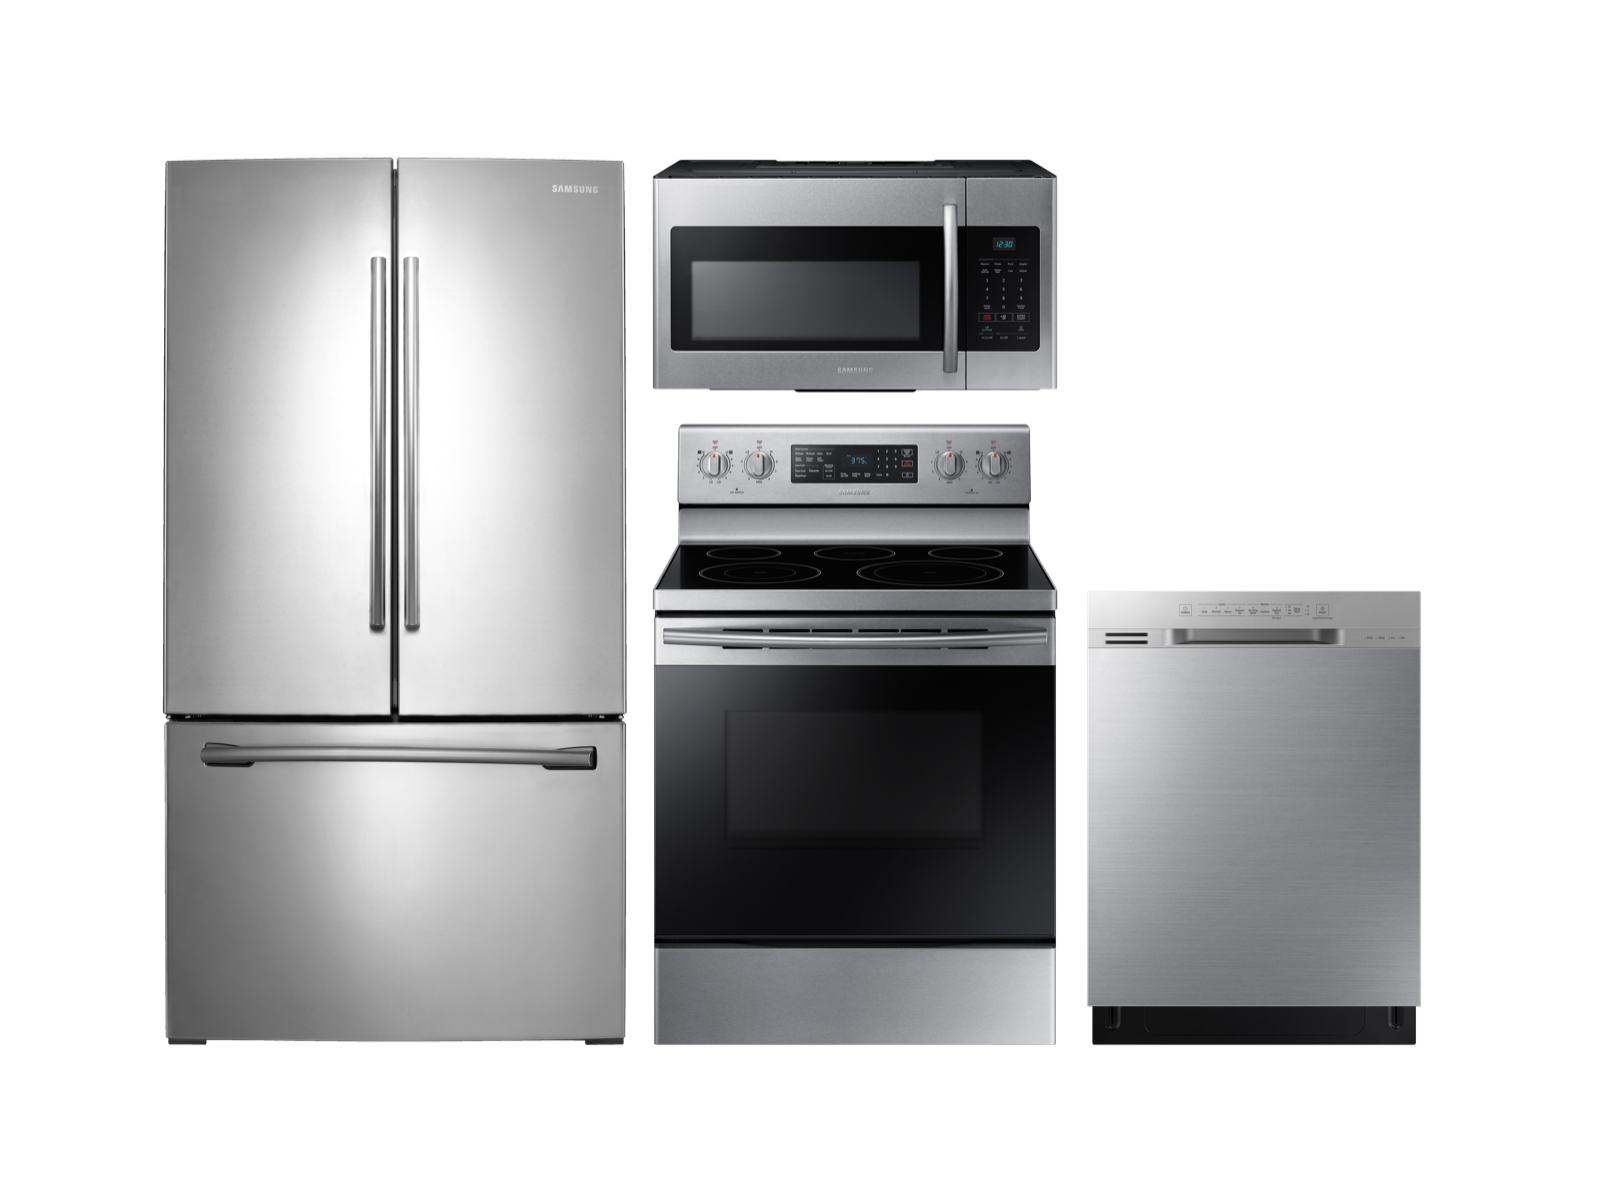 State-of-the-art design in stainless steel